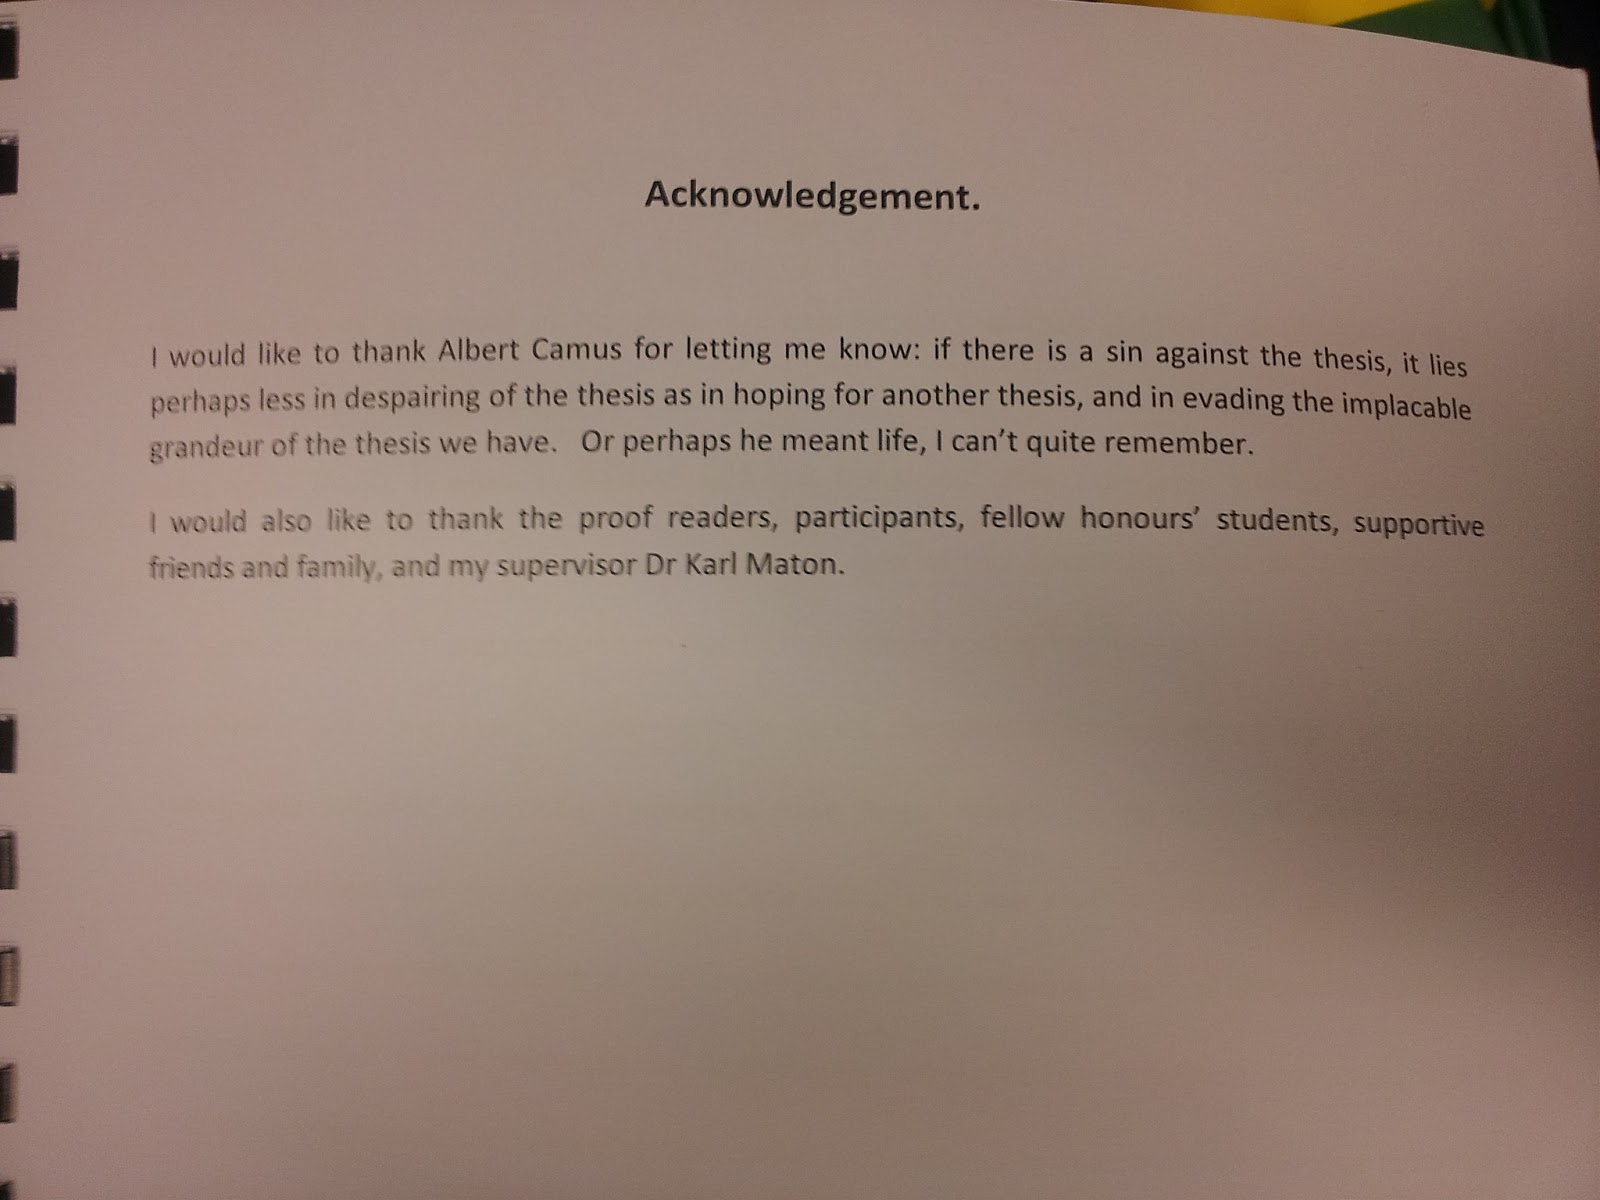 Dissertation acknowledgements memory